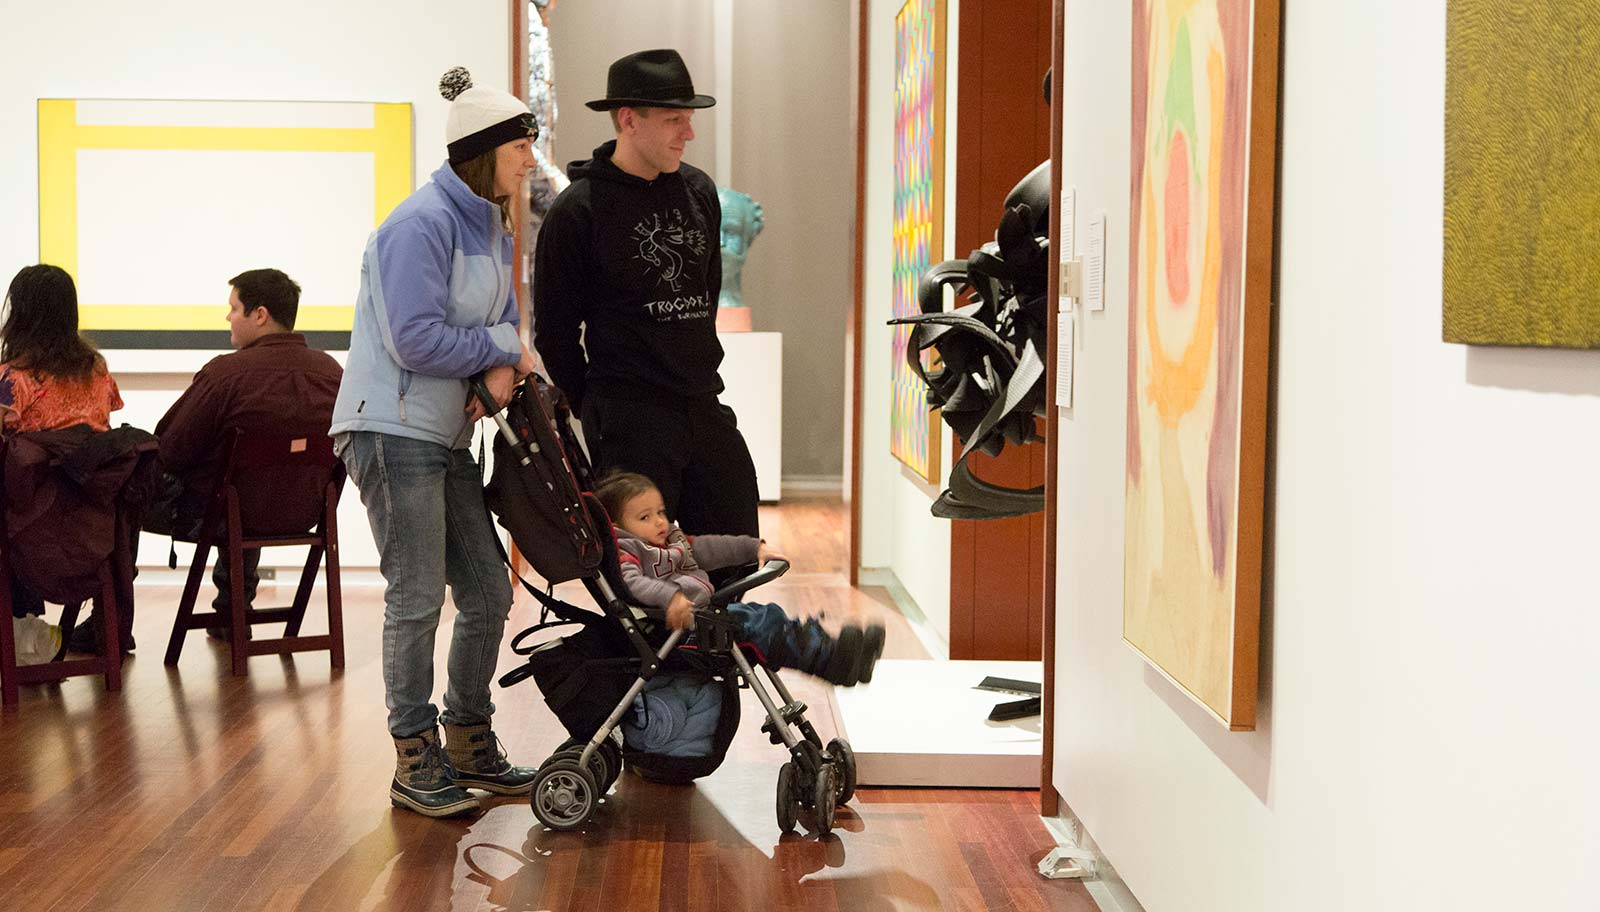 A couple with a child in a stroller view art in the contemporary gallery.